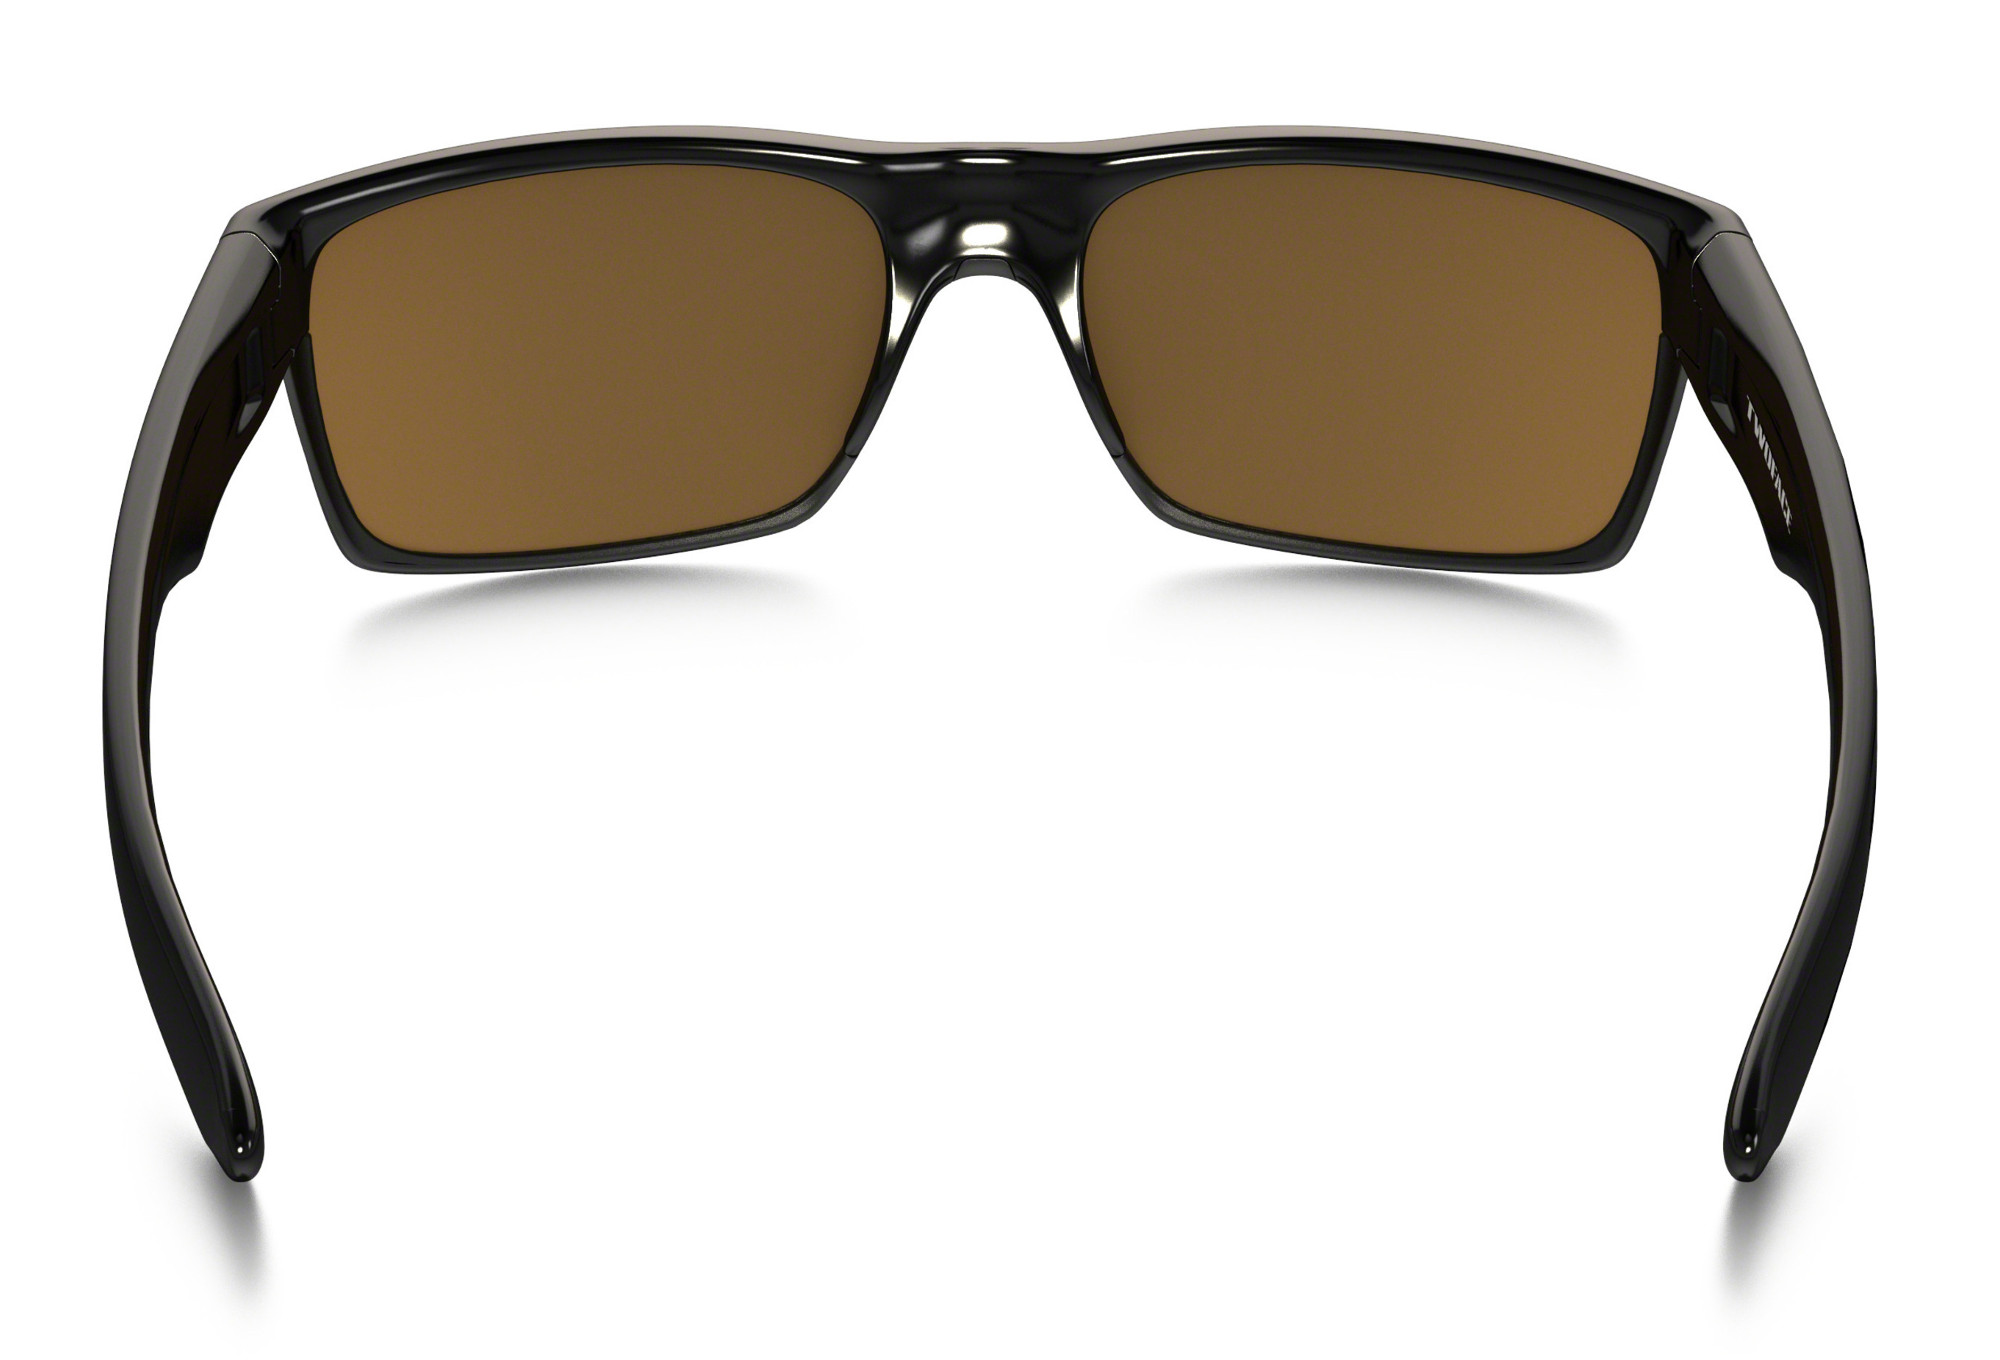 544fe28f361 Oakley Twoface Sunglasses - Dark Bronze